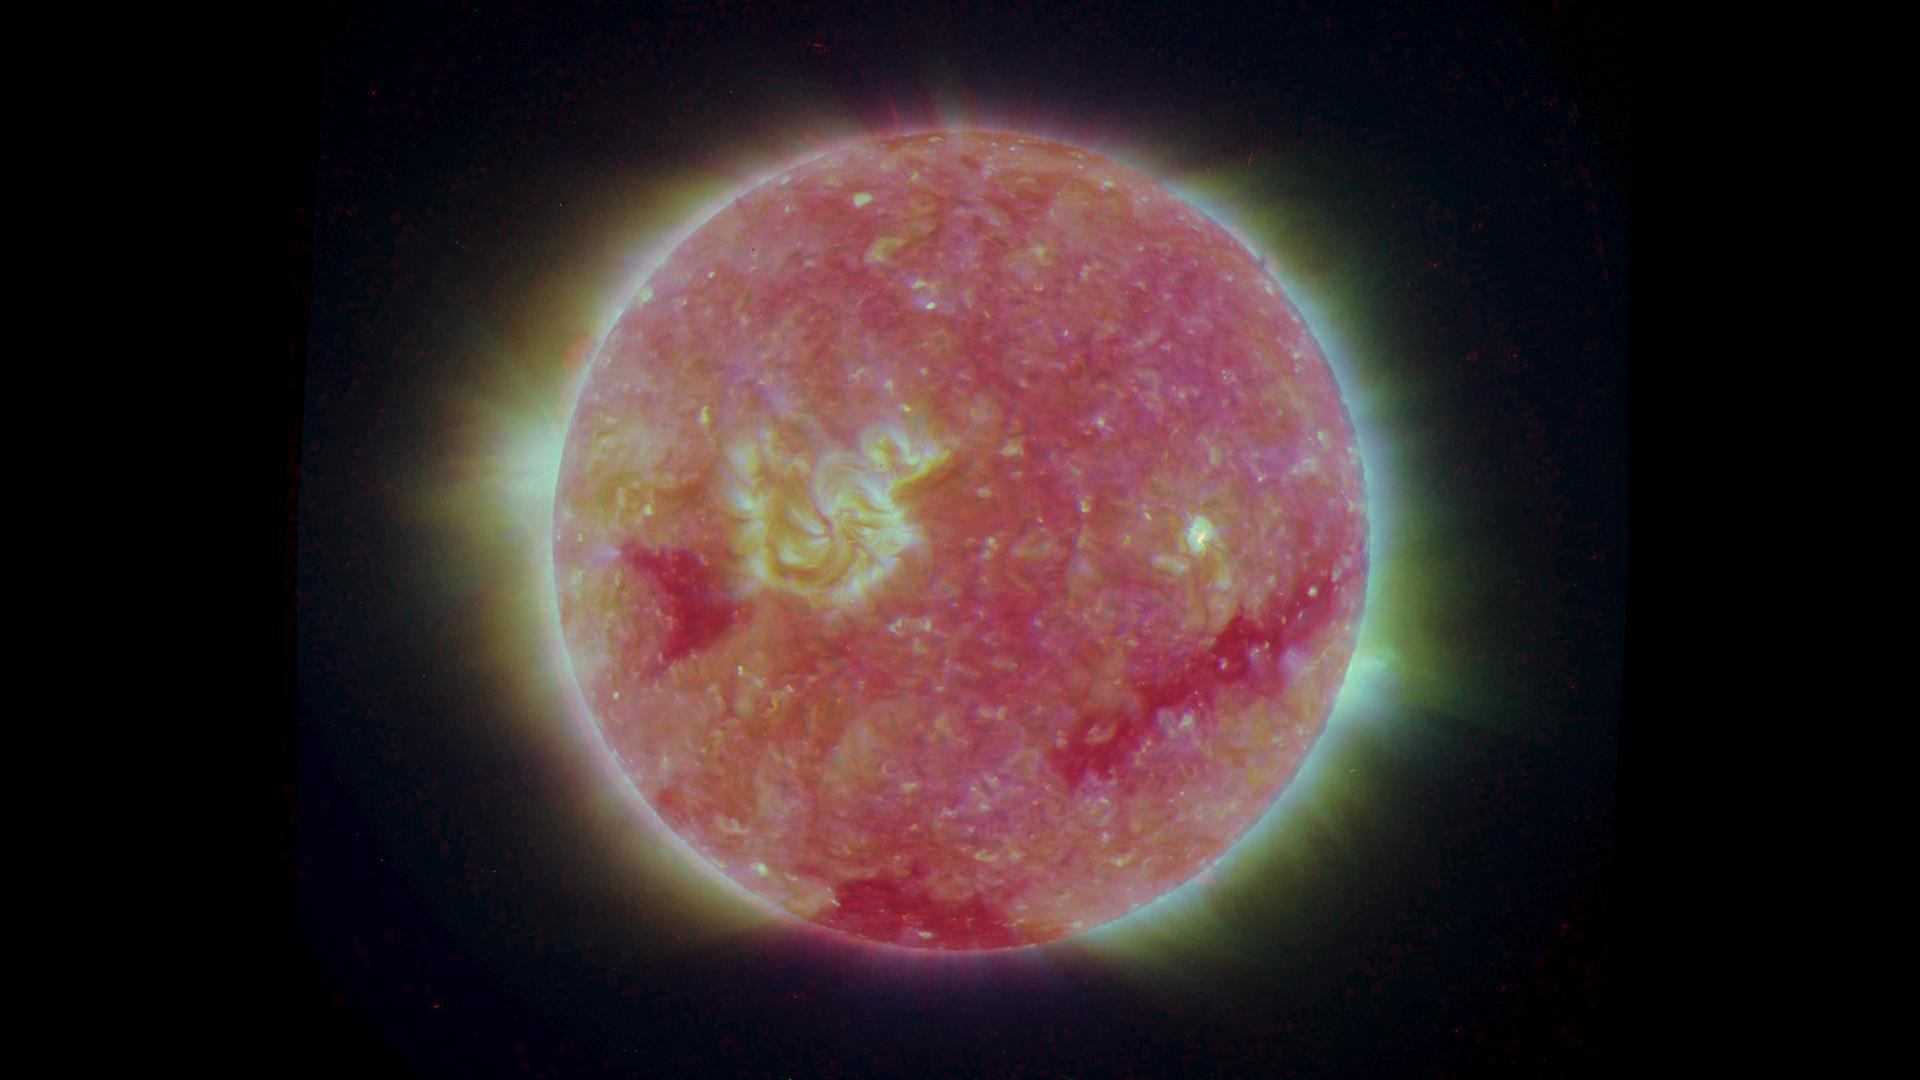 The structure of the Sun's corona shows well in this image from NASA's Solar TErrestrial RElations Observatory (STEREO)